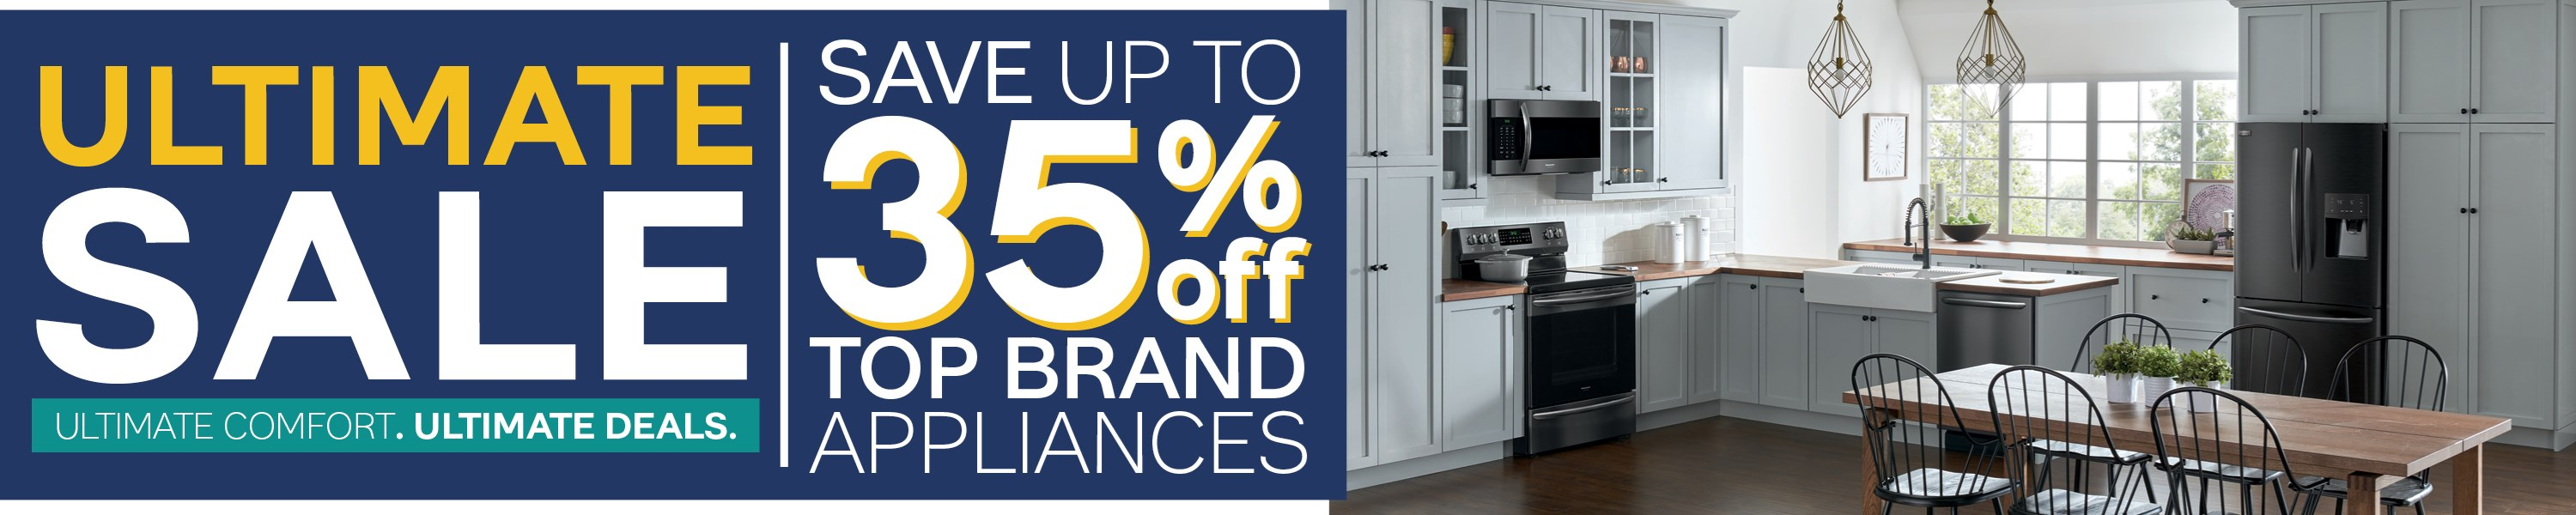 Furniture & ApplianceMart Ultimate Sale